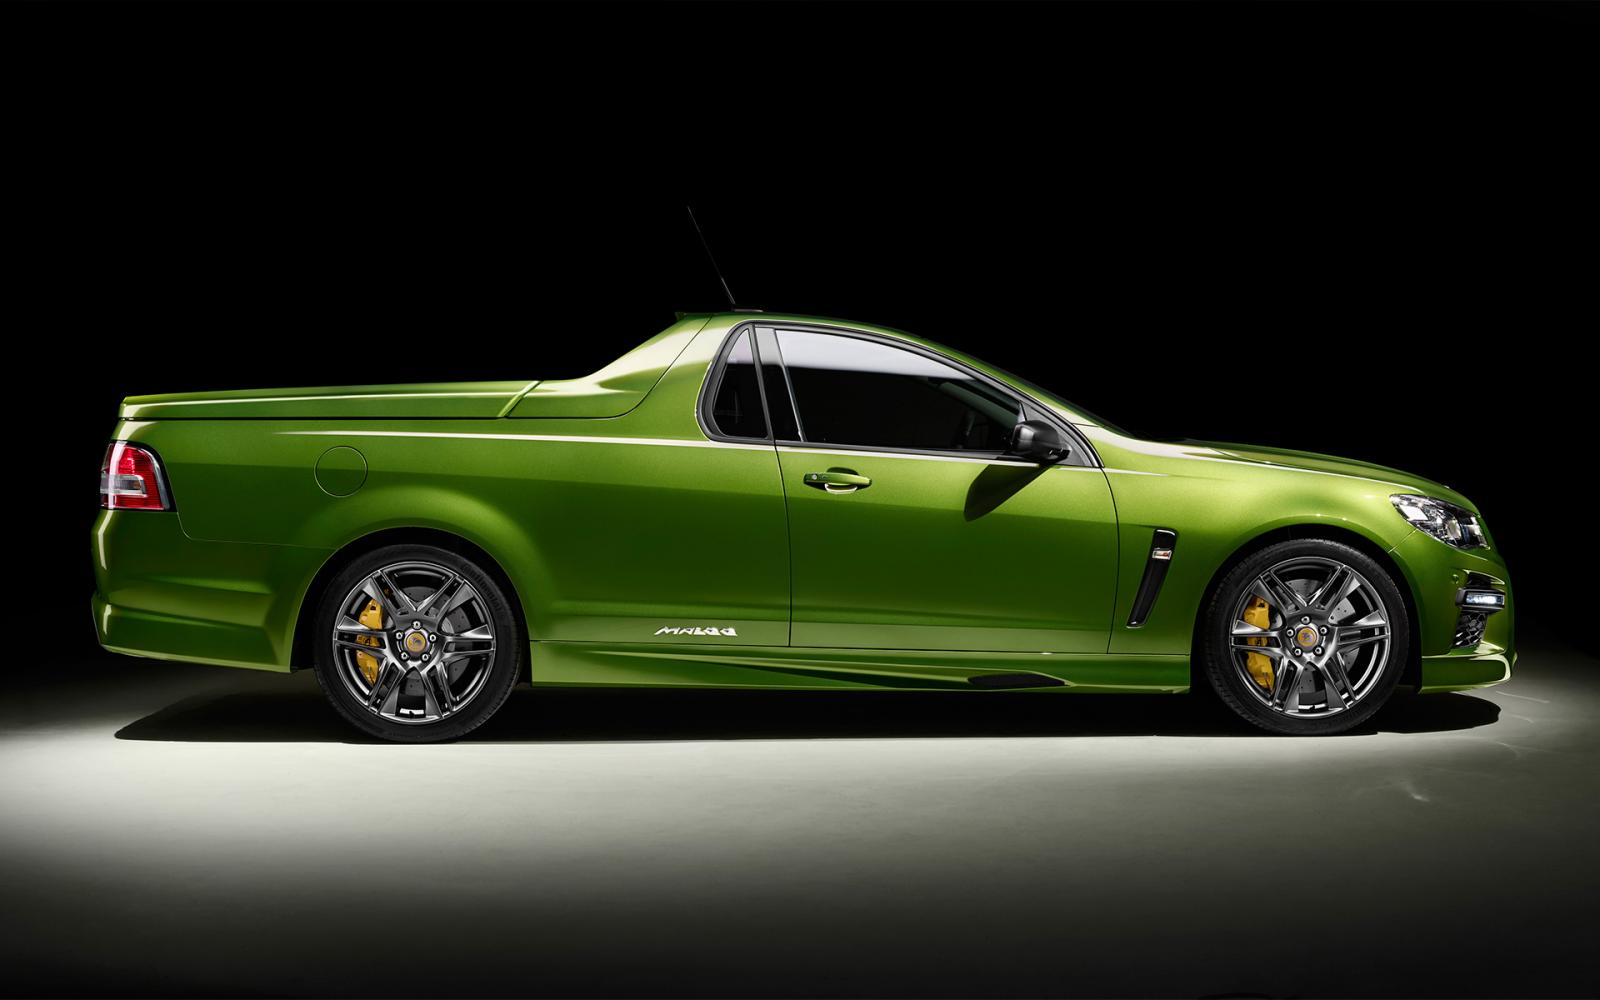 Hsv Cars News Hsv Unleashes Limited Edition Gts Maloo